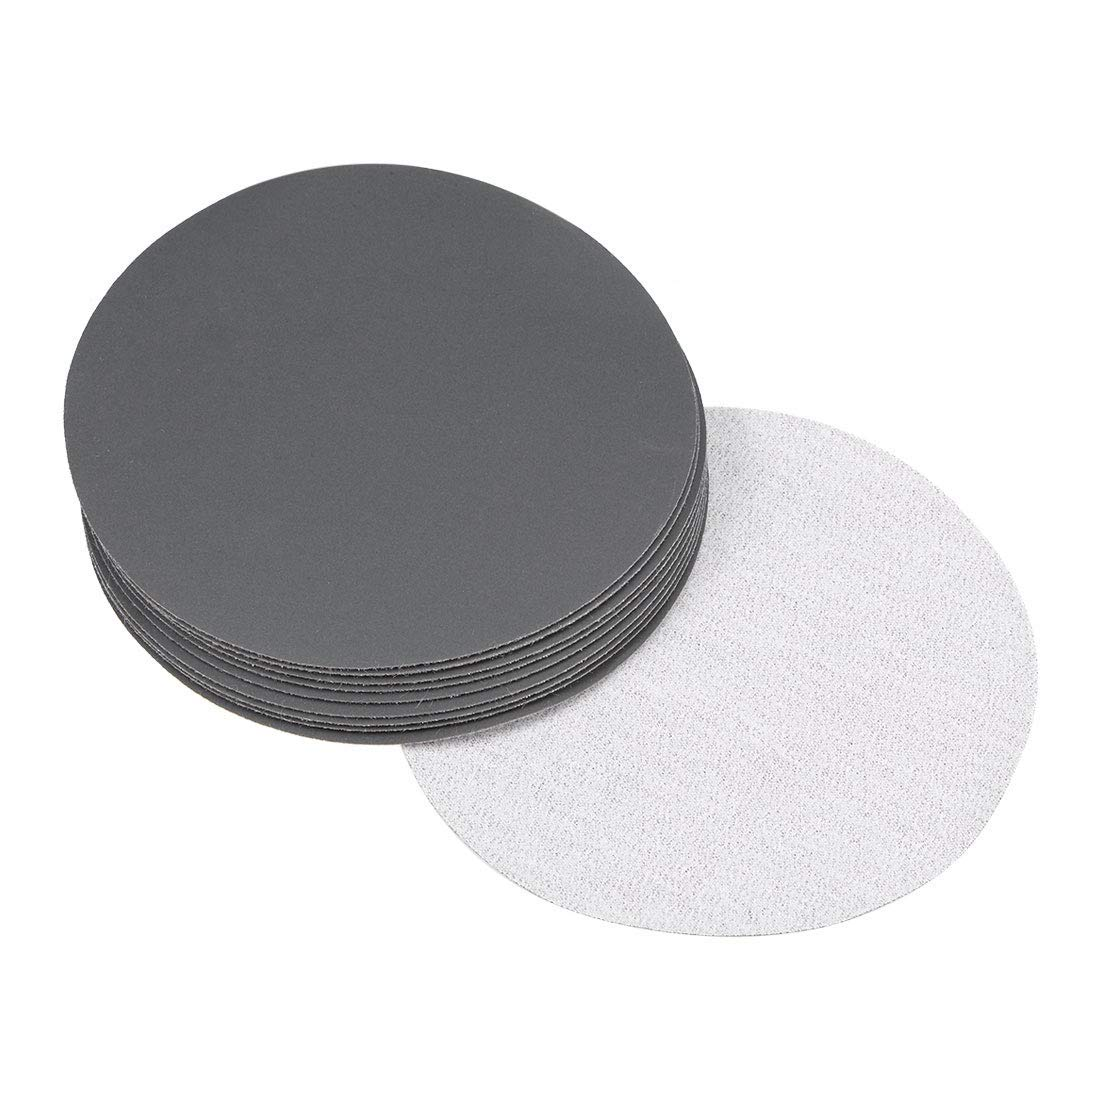 5-inch dry and wet sanding discs Sanding disc with 800 hooks and loops Silicon carbide sandpaper 10 pieces